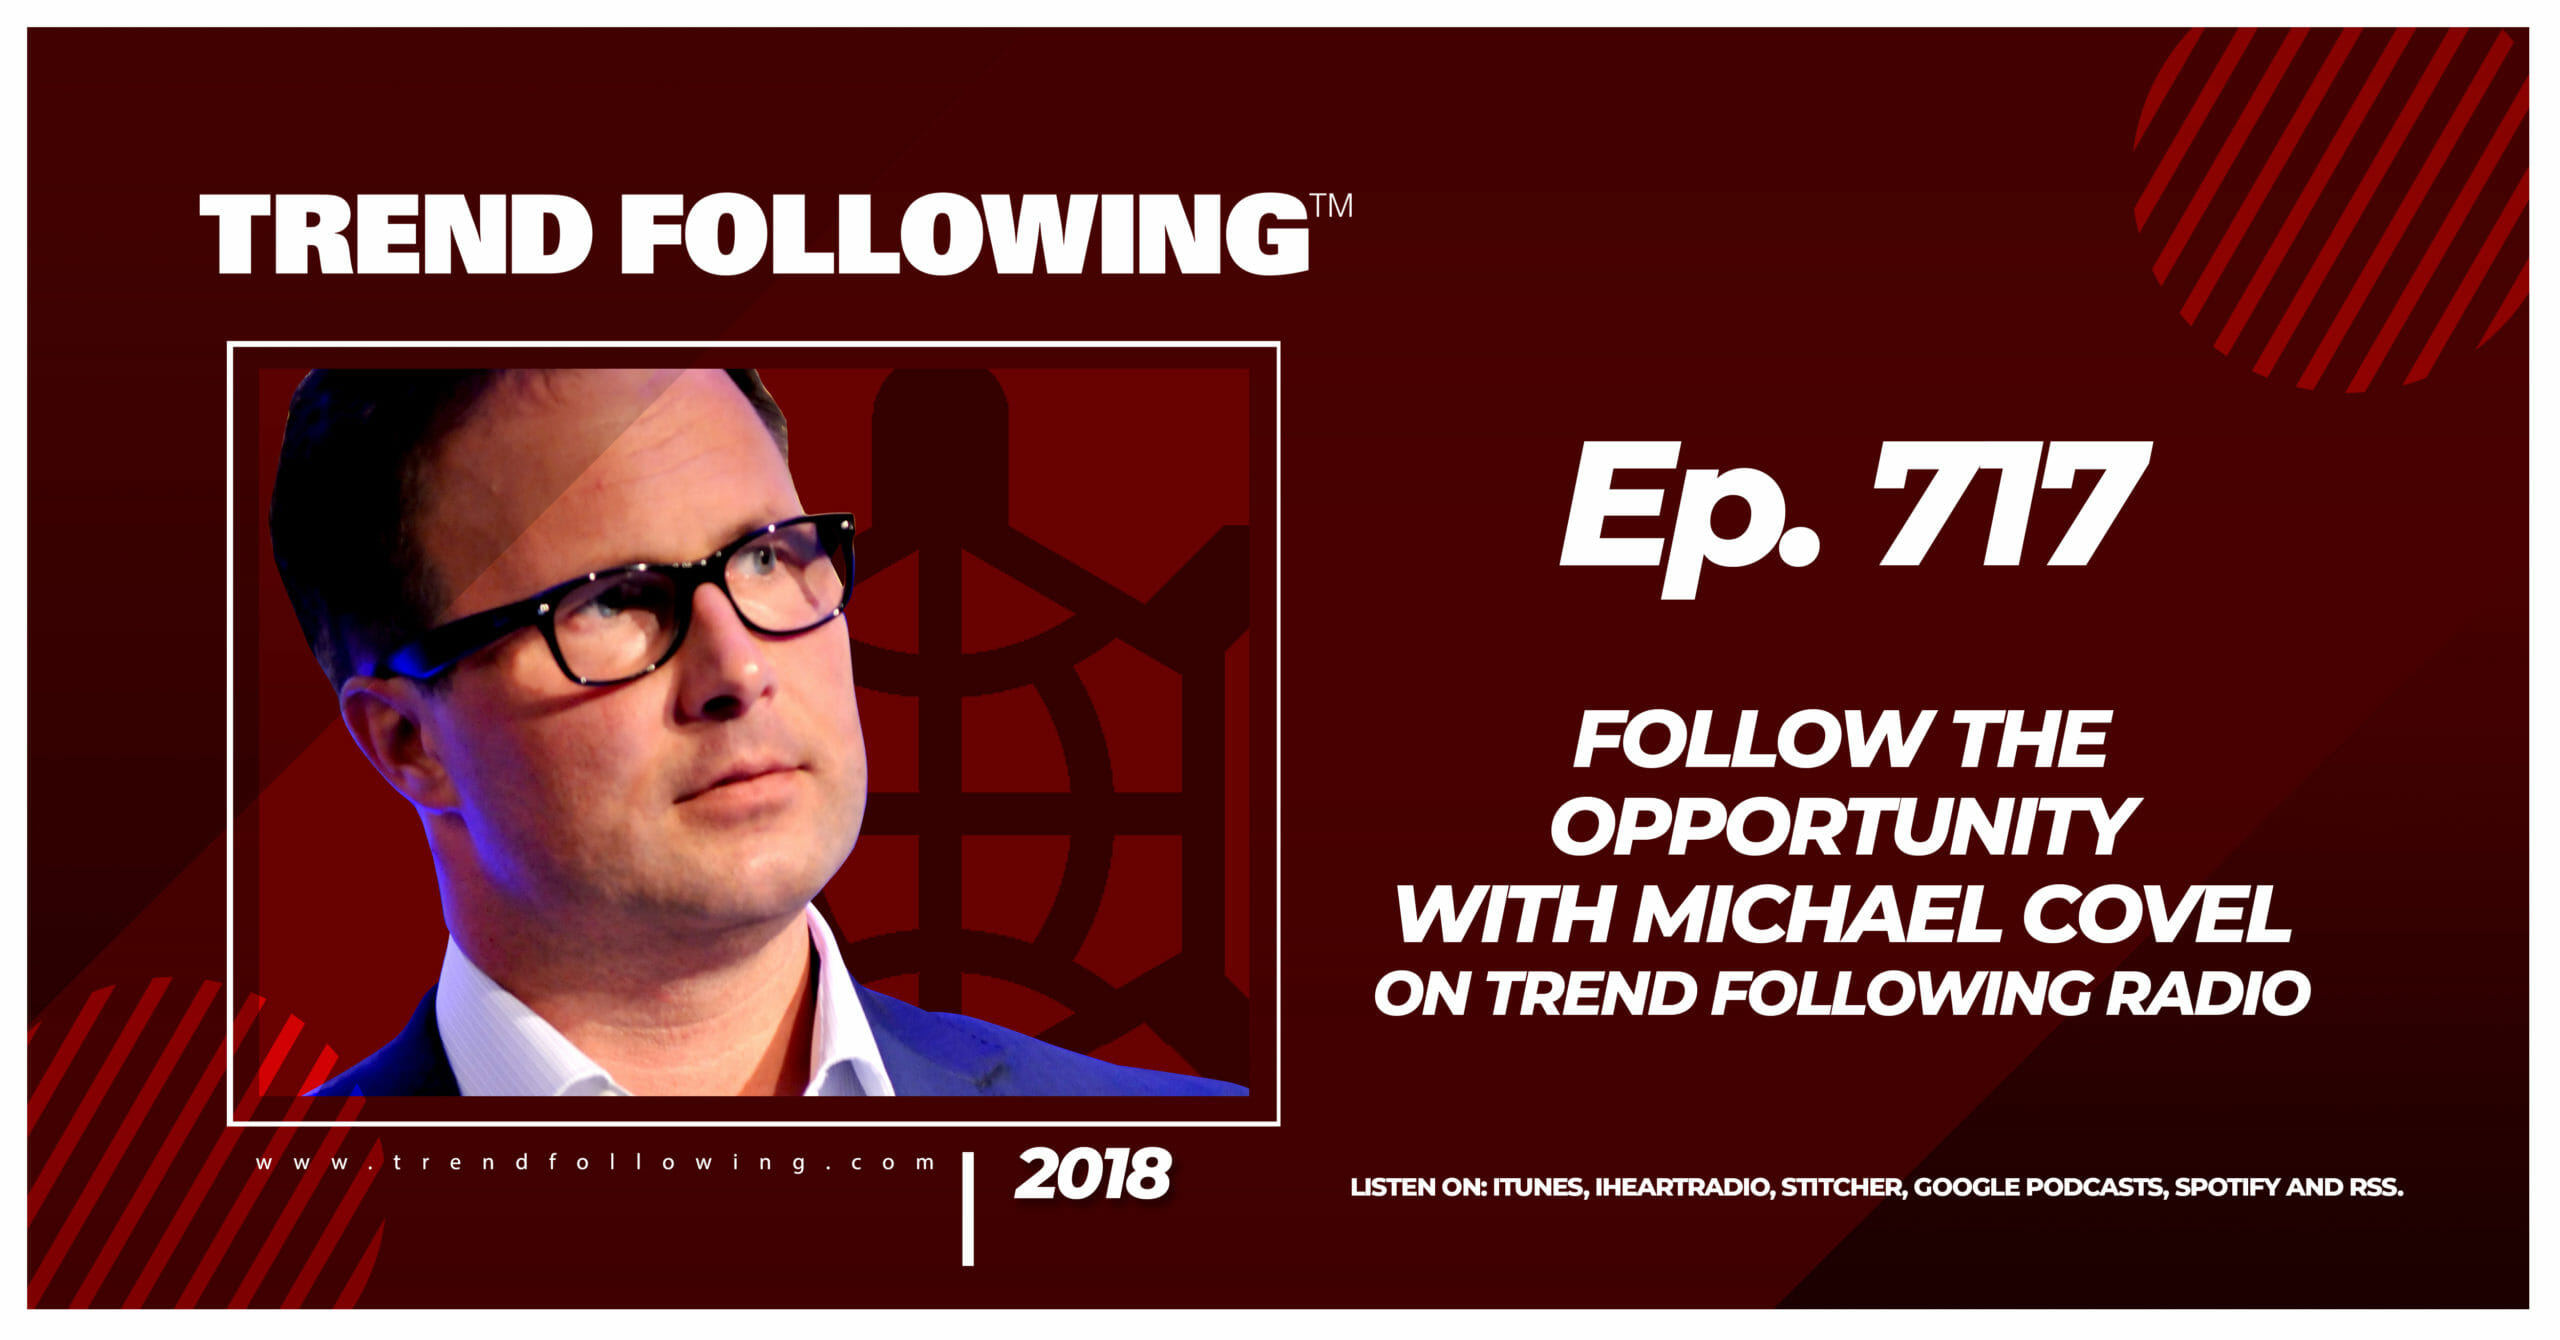 Follow the Opportunity with Michael Covel on Trend Following Radio